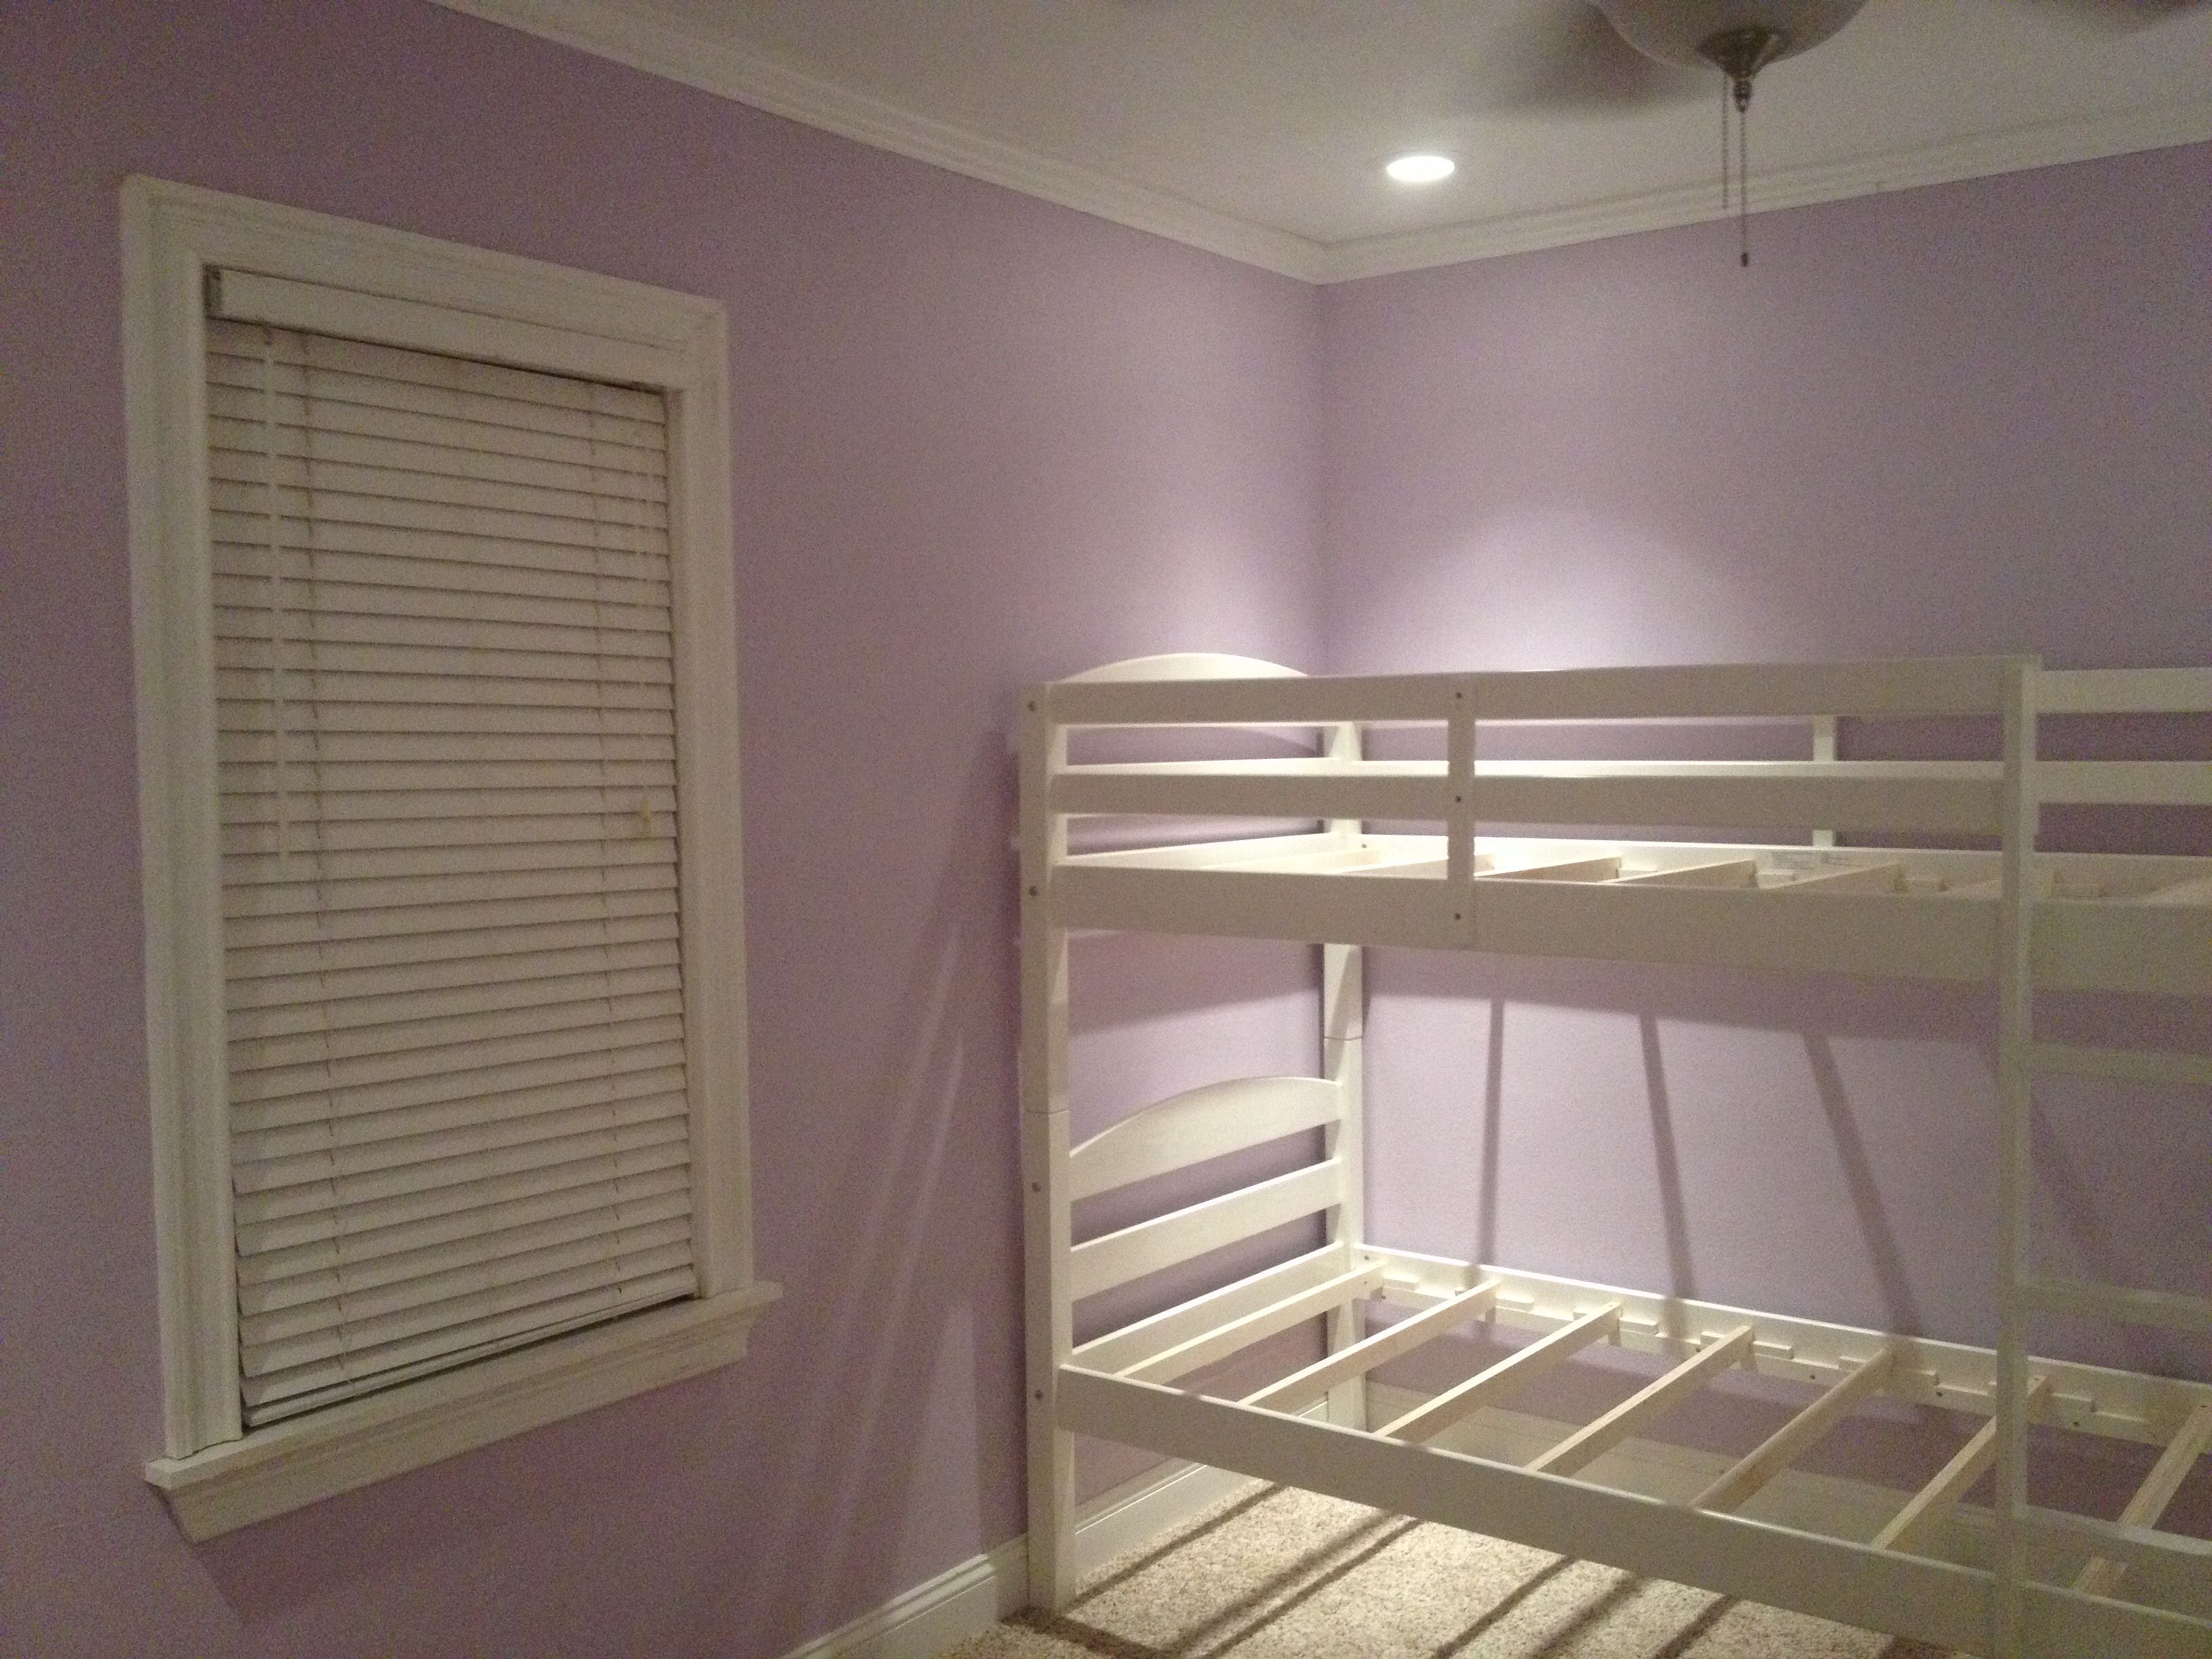 Sherwin williams potentially purple 6821 · room colorspaint